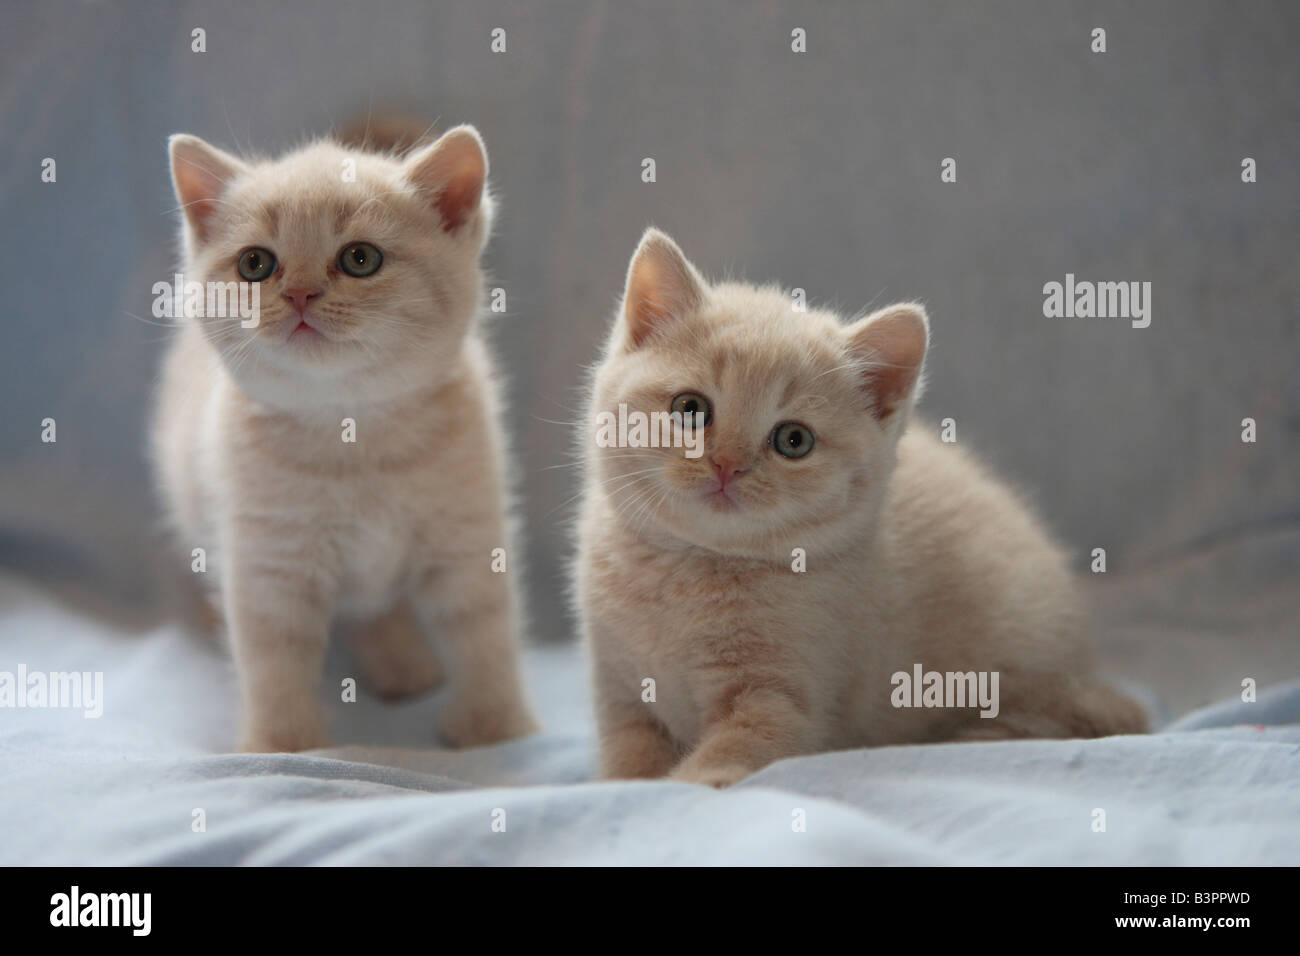 Kittens, Casrthusian (Silvestris domestic spec.) - Stock Image